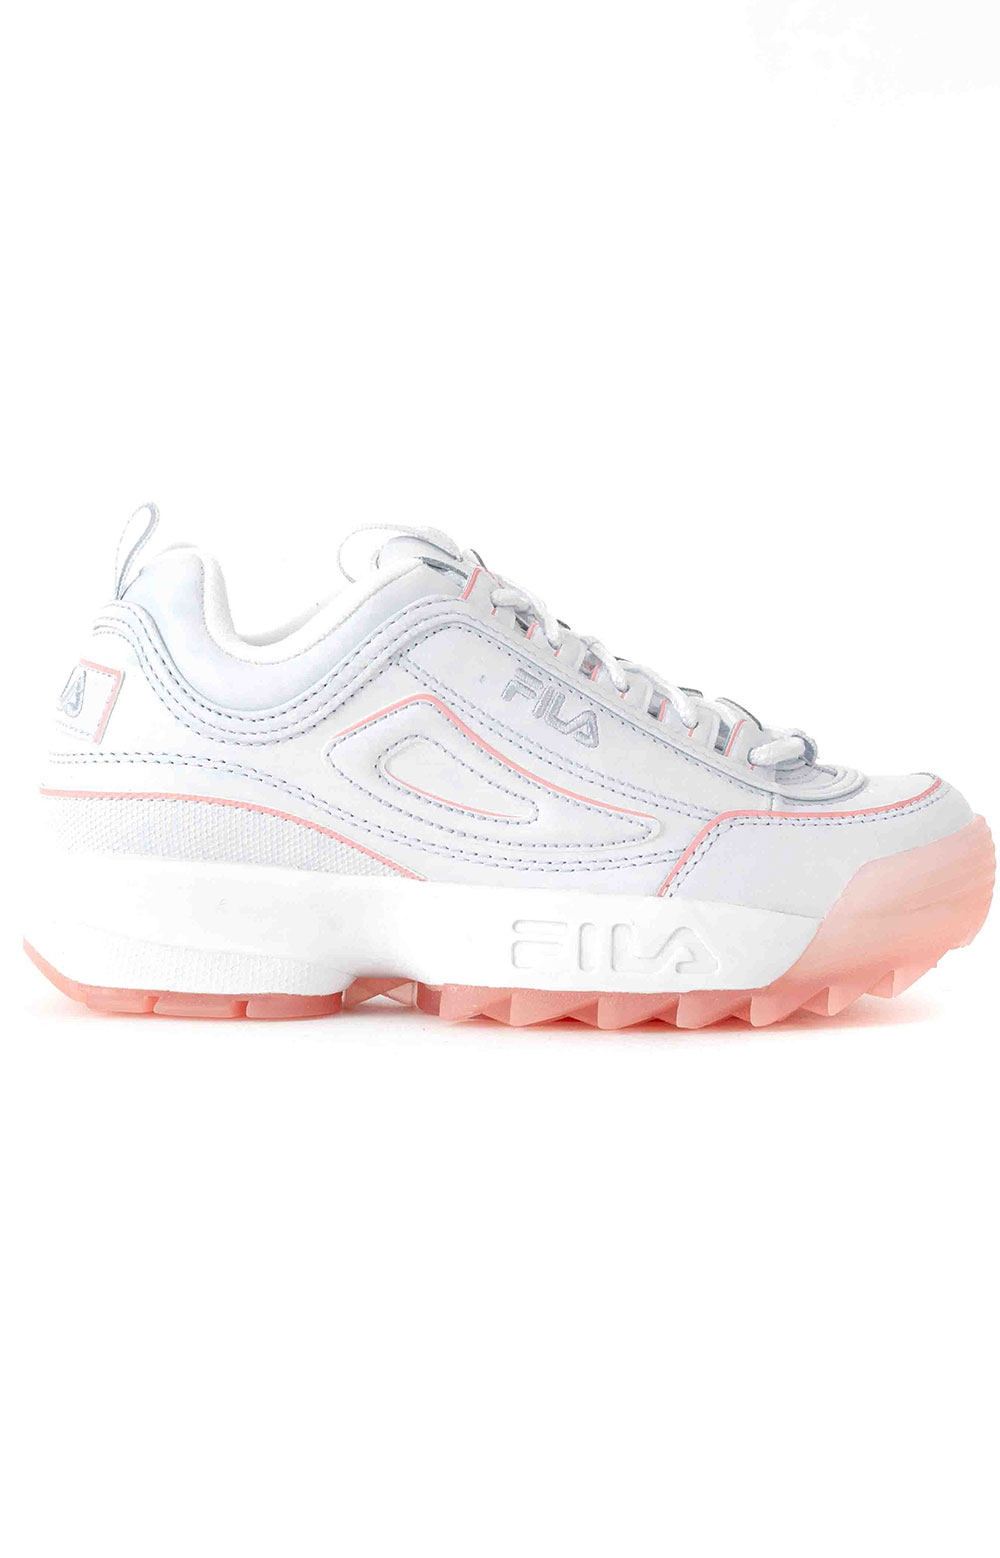 Disruptor II Ice Shoes - White/Pink